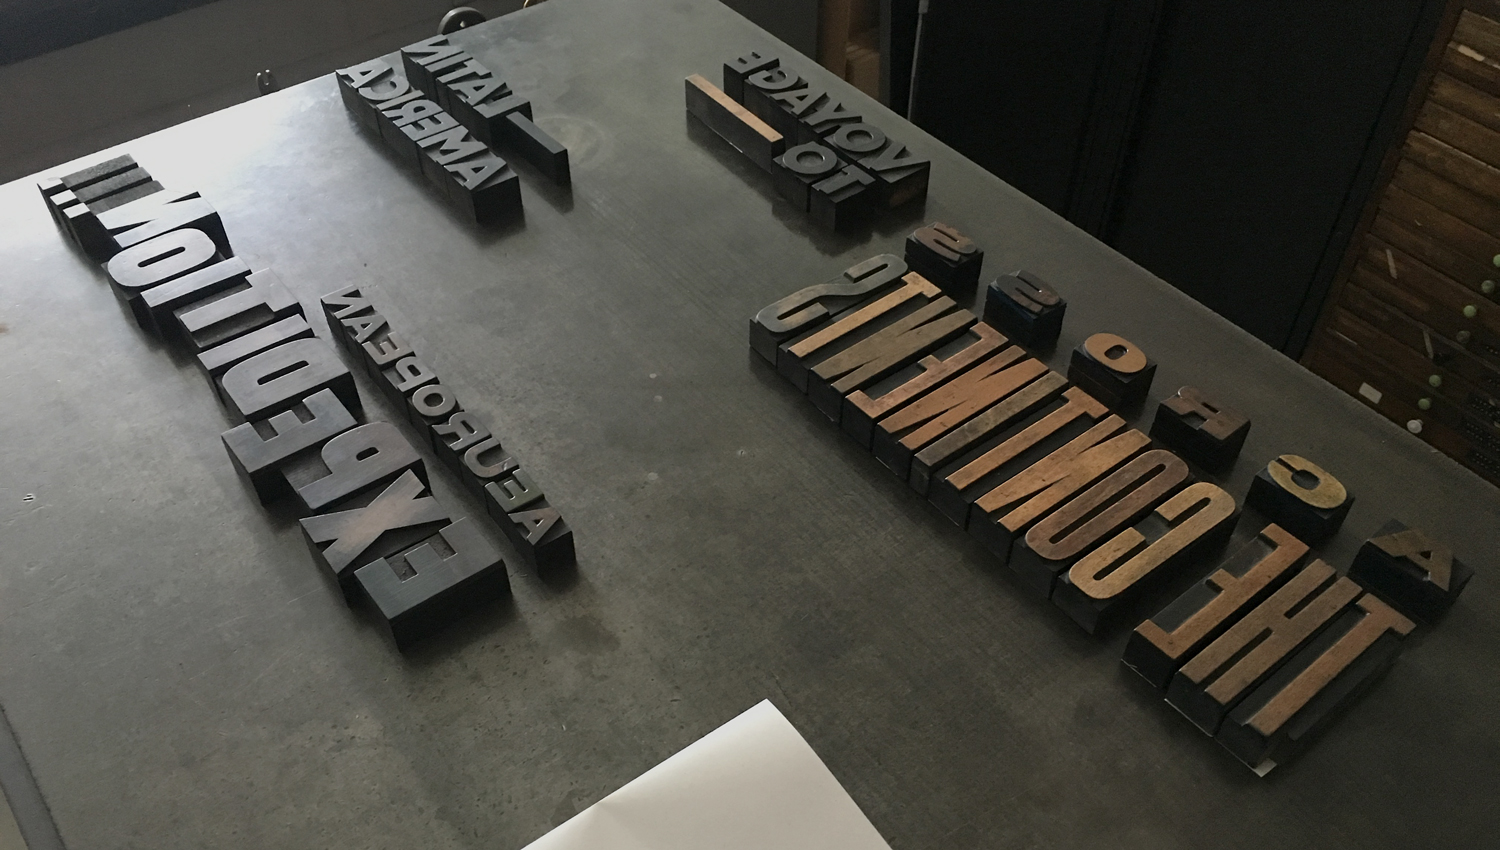 Type blocks for the book Tiro, released by UK independent publisher Rattis Books and typeset by The Counter Press